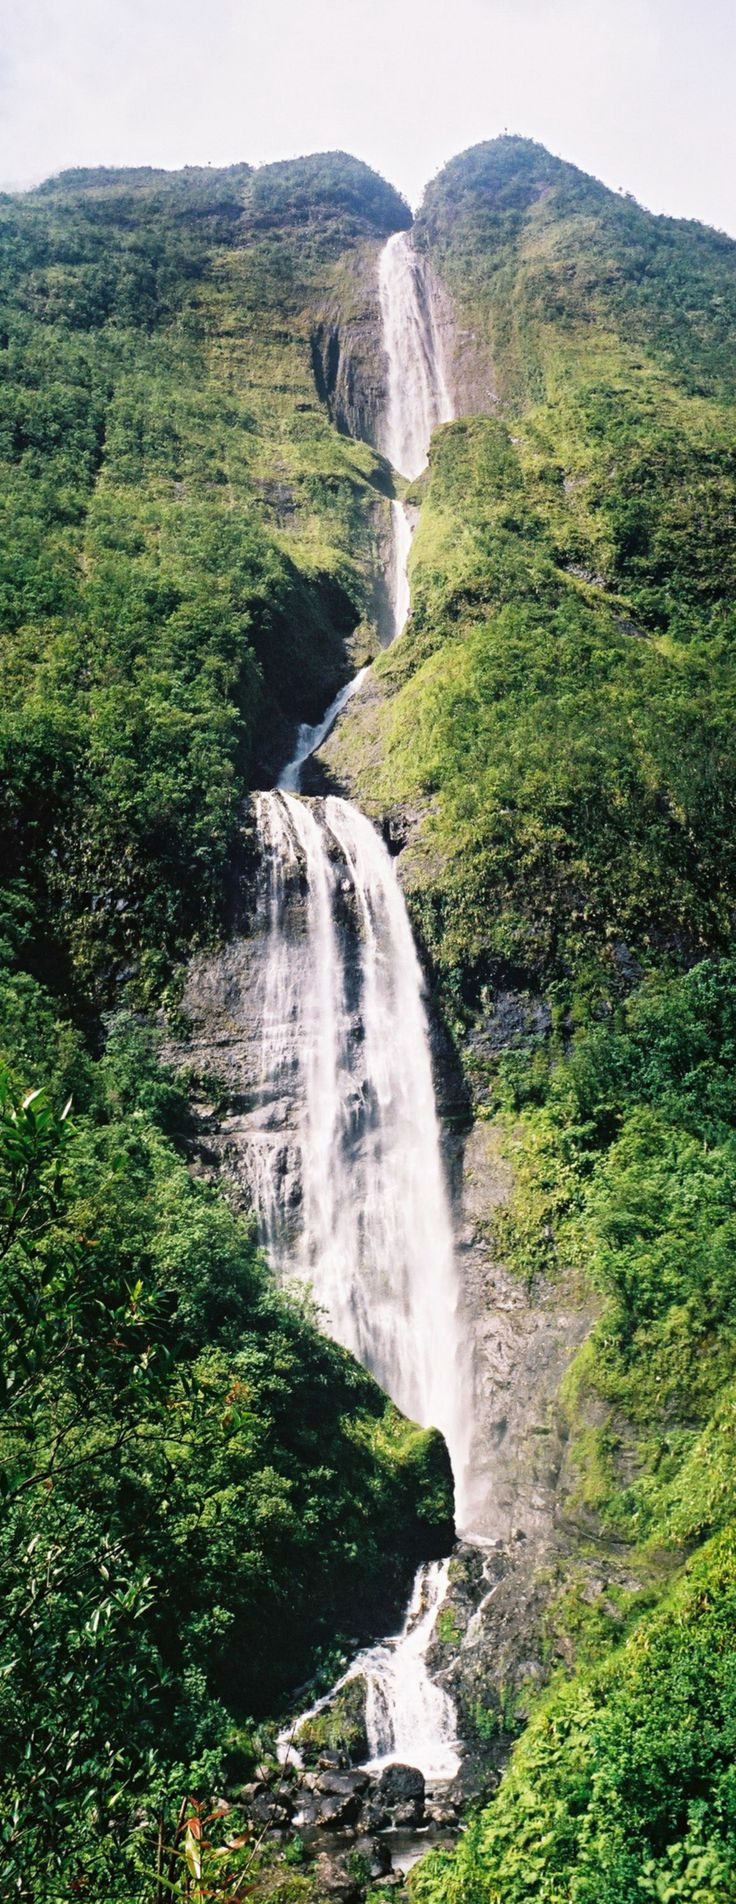 Waterfall in the cirque of Salazie (Réunion Island) © Daniel Gibert http://abnb.me/e/1Bw4yfnlSC https://hotellook.com/countries/reunion?marker=126022.pinterest